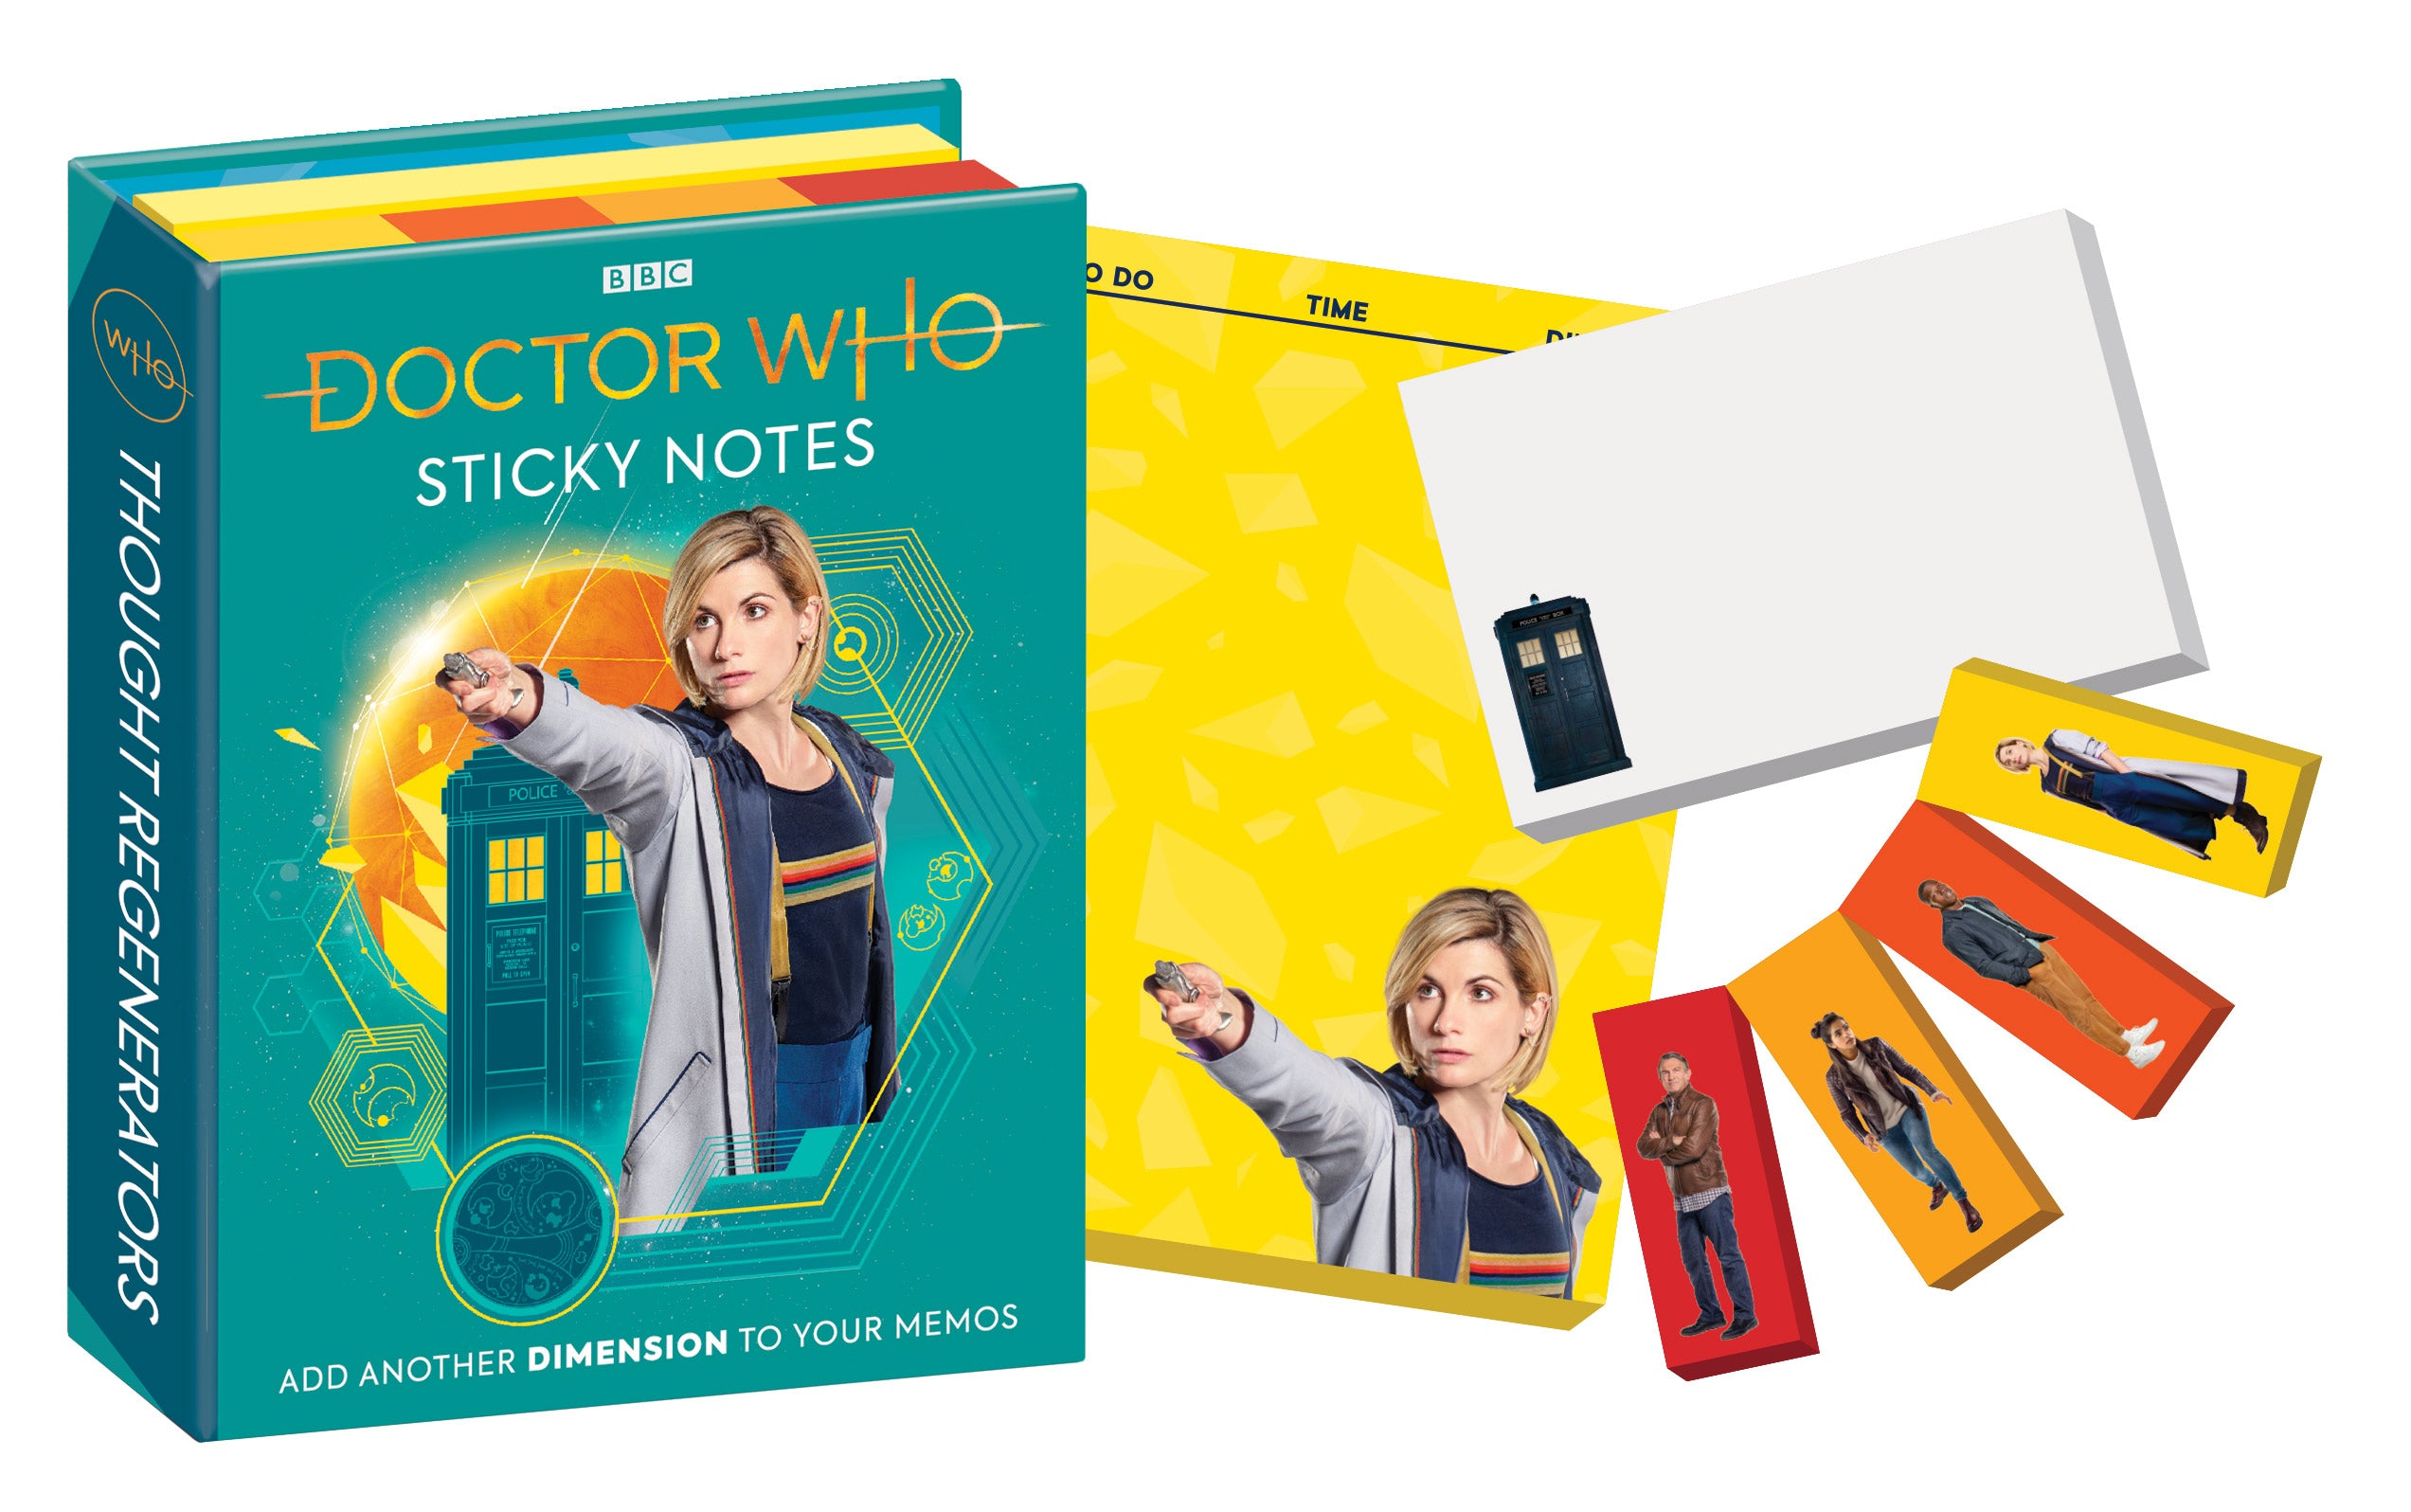 Doctor Who Sticky Note Booklet